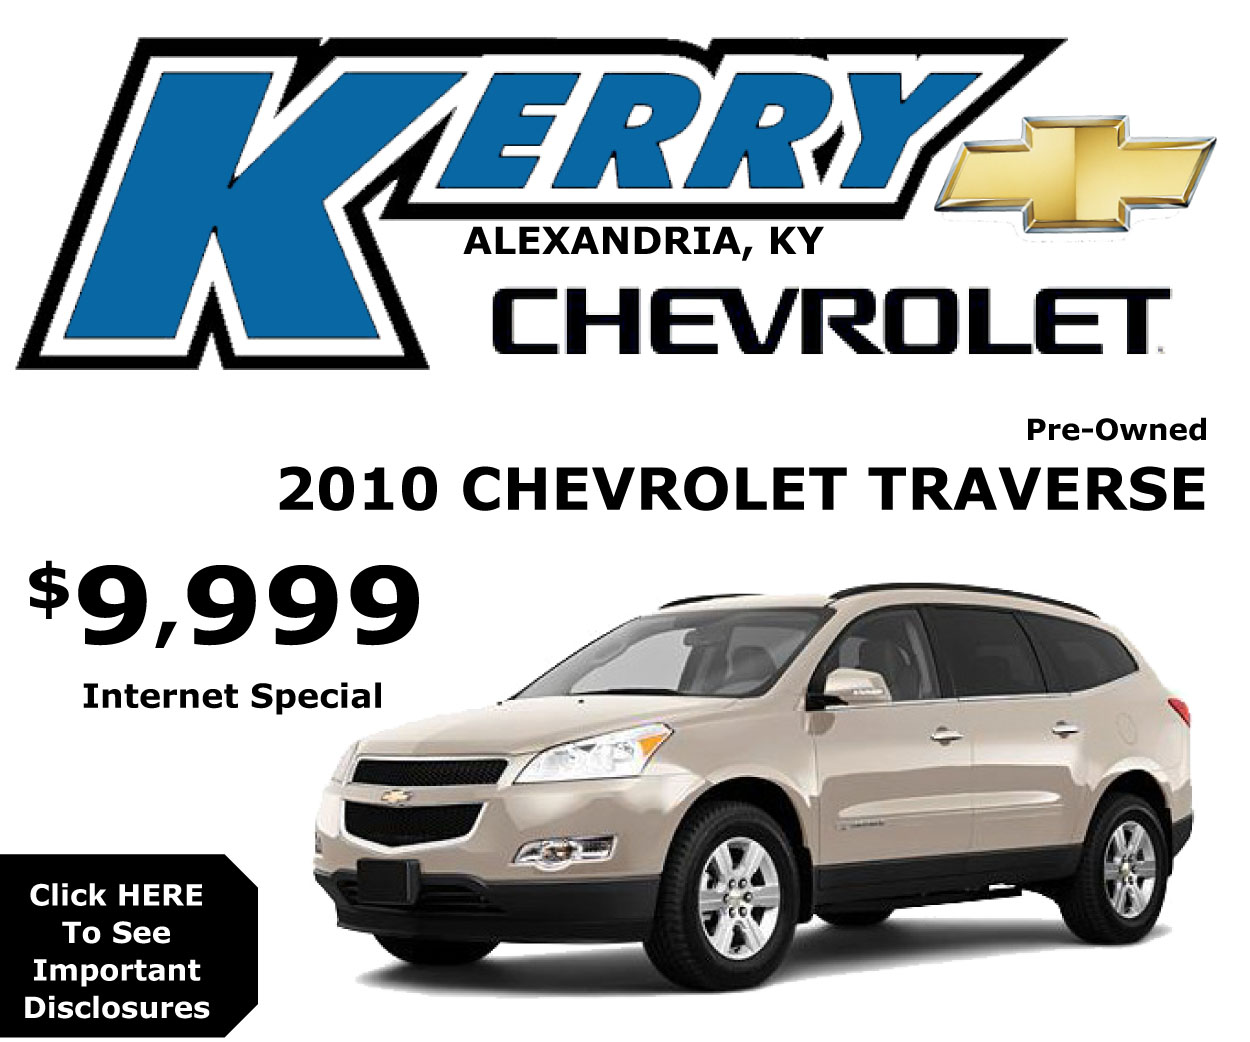 Kerry Chevrolet Traverse